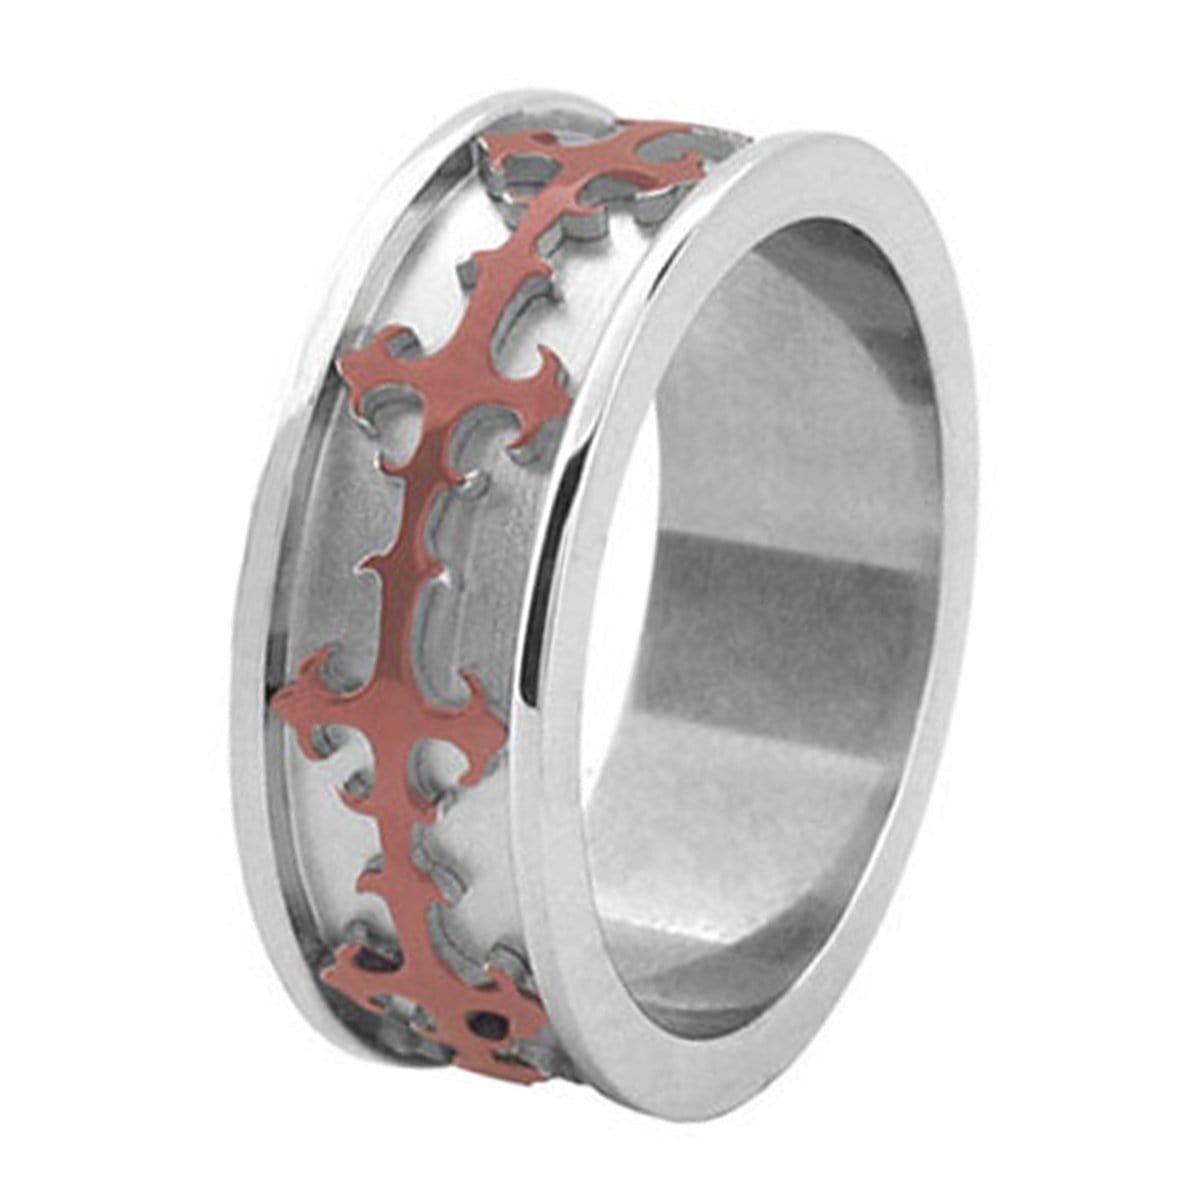 Silver & Cappuccino Stainless Steel Cross Design Ring Rings